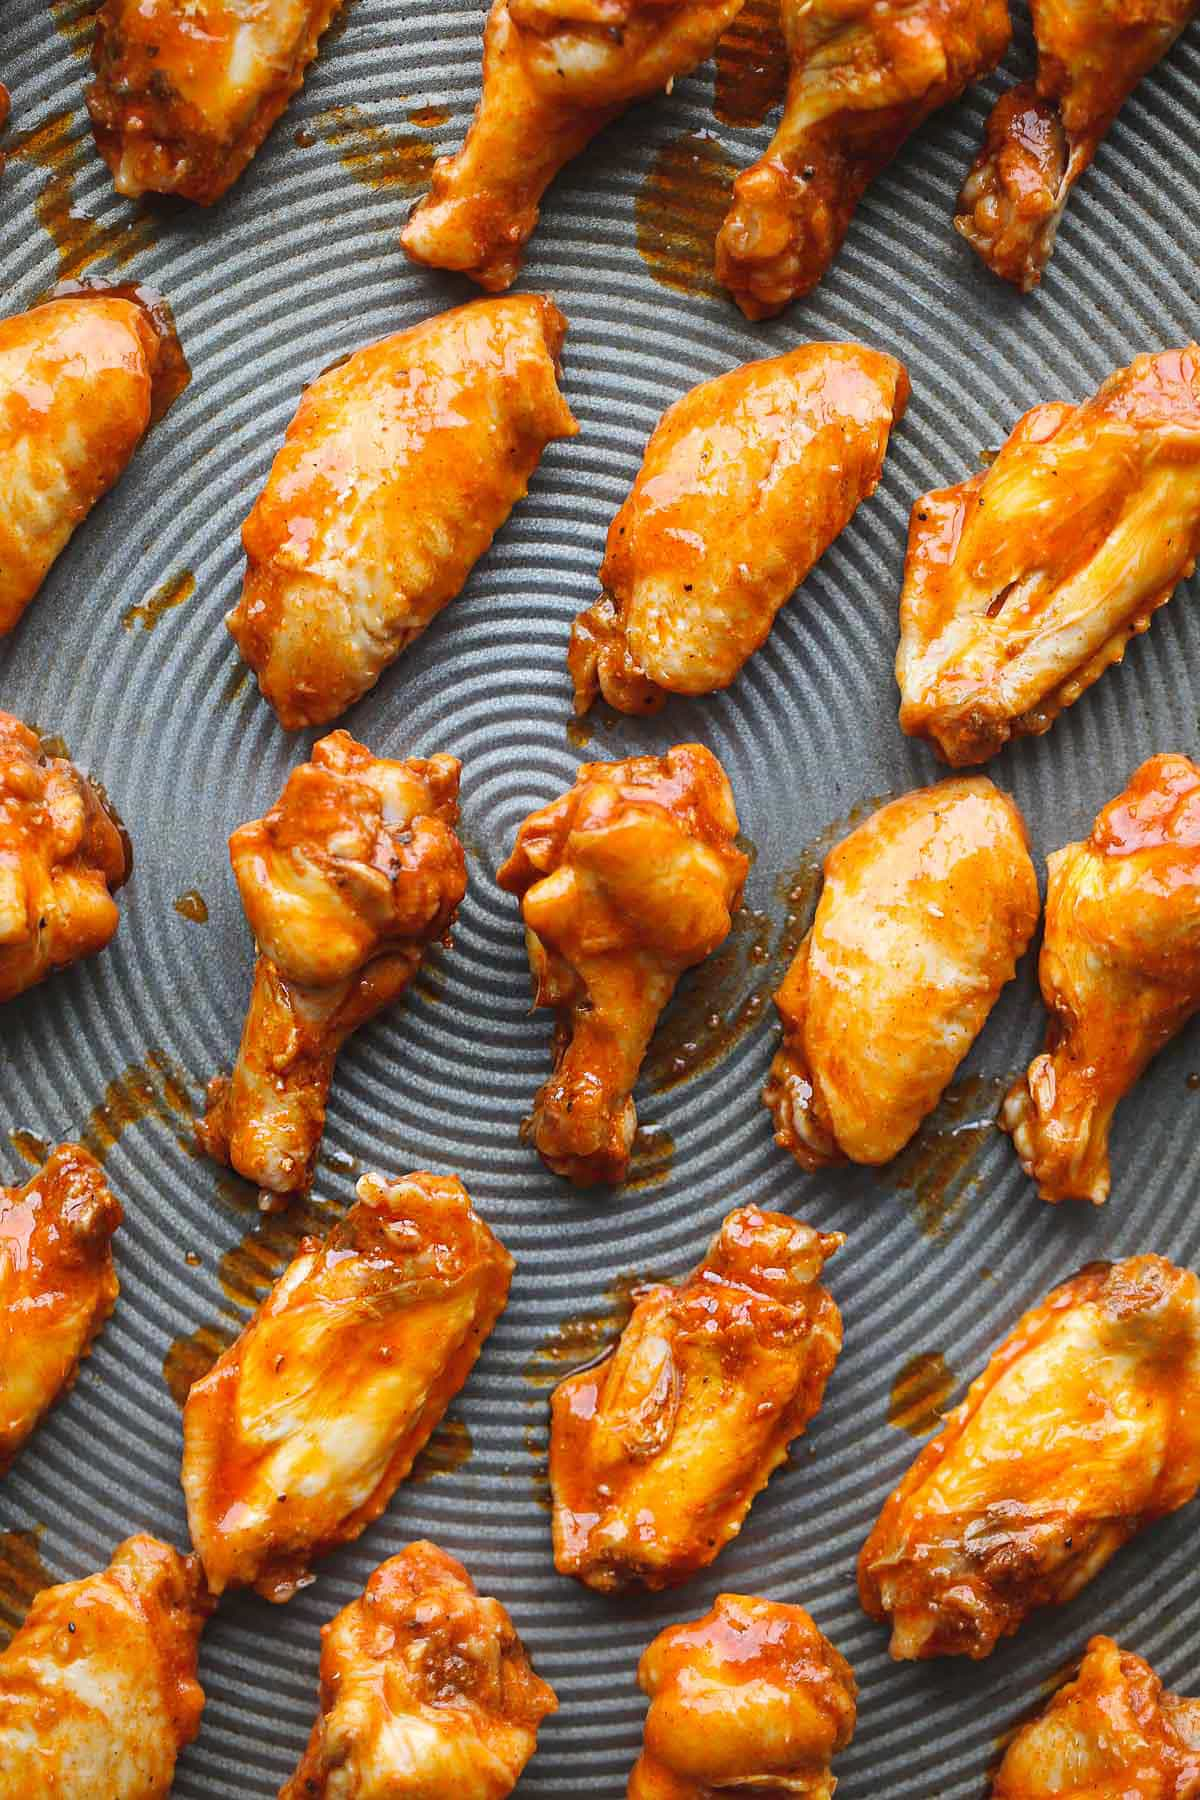 Chicken wings on a sheet pan before broiling